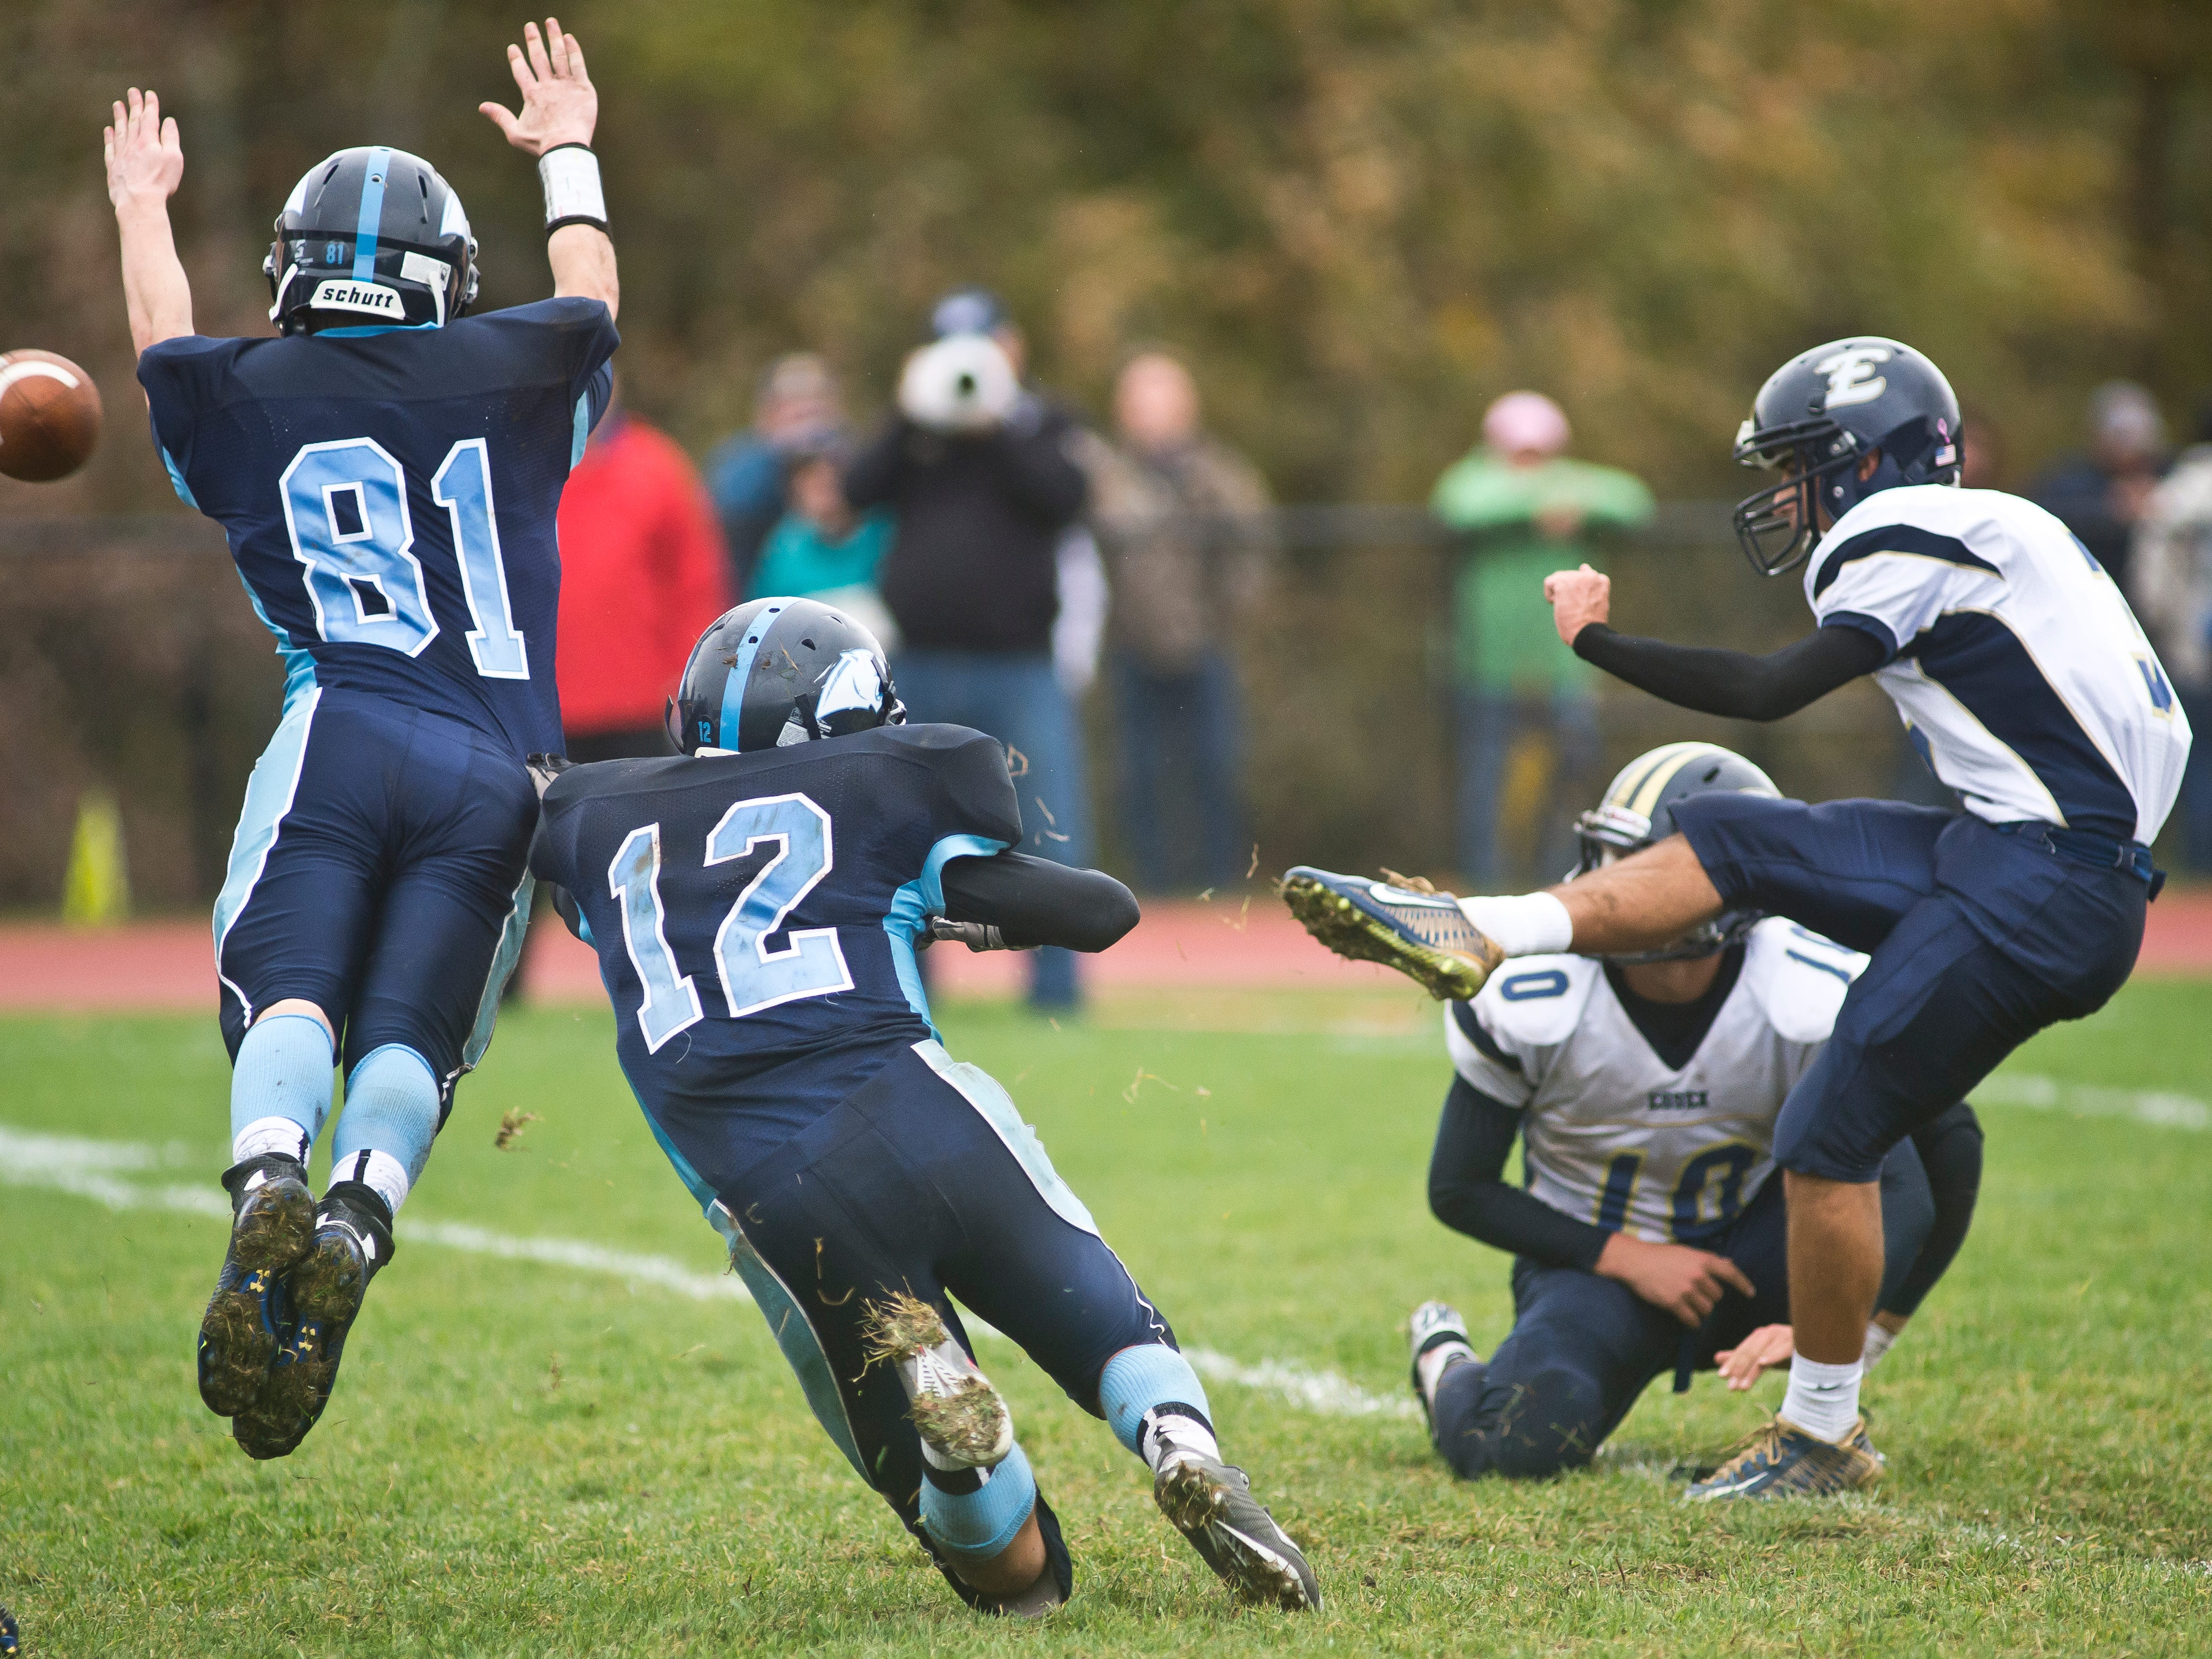 MMU's #81Justin Fischer and #12 Dominic Mosca manage to put the pressure on Essex #3 Matthew Olsen, forcing an extra point attempt wide during Saturday's game in Jericho.